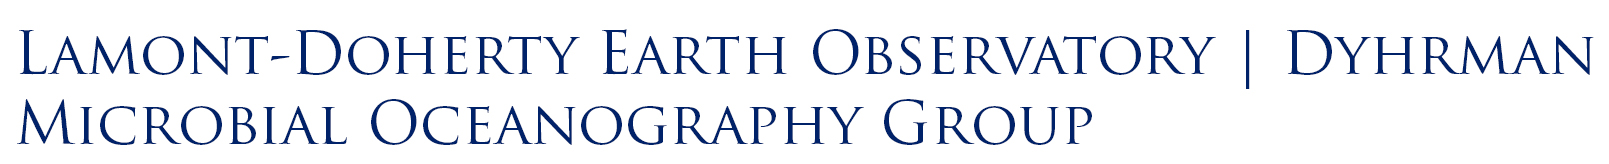 Lamont-Doherty Earth Observatory | Dyhrman Microbial Oceanography Group logo